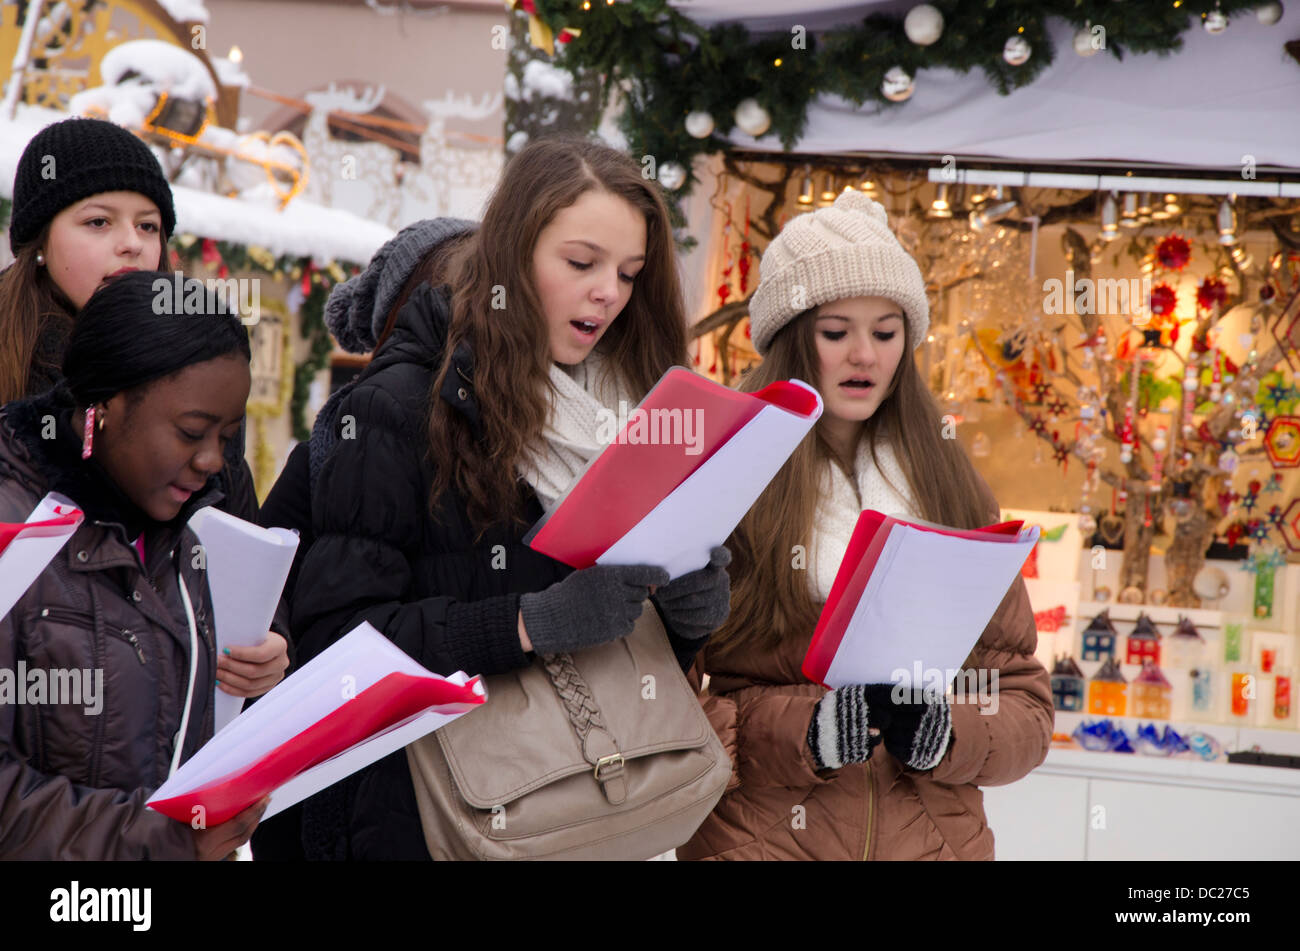 Christmas Caroling.Christmas Caroling Stock Photos Christmas Caroling Stock